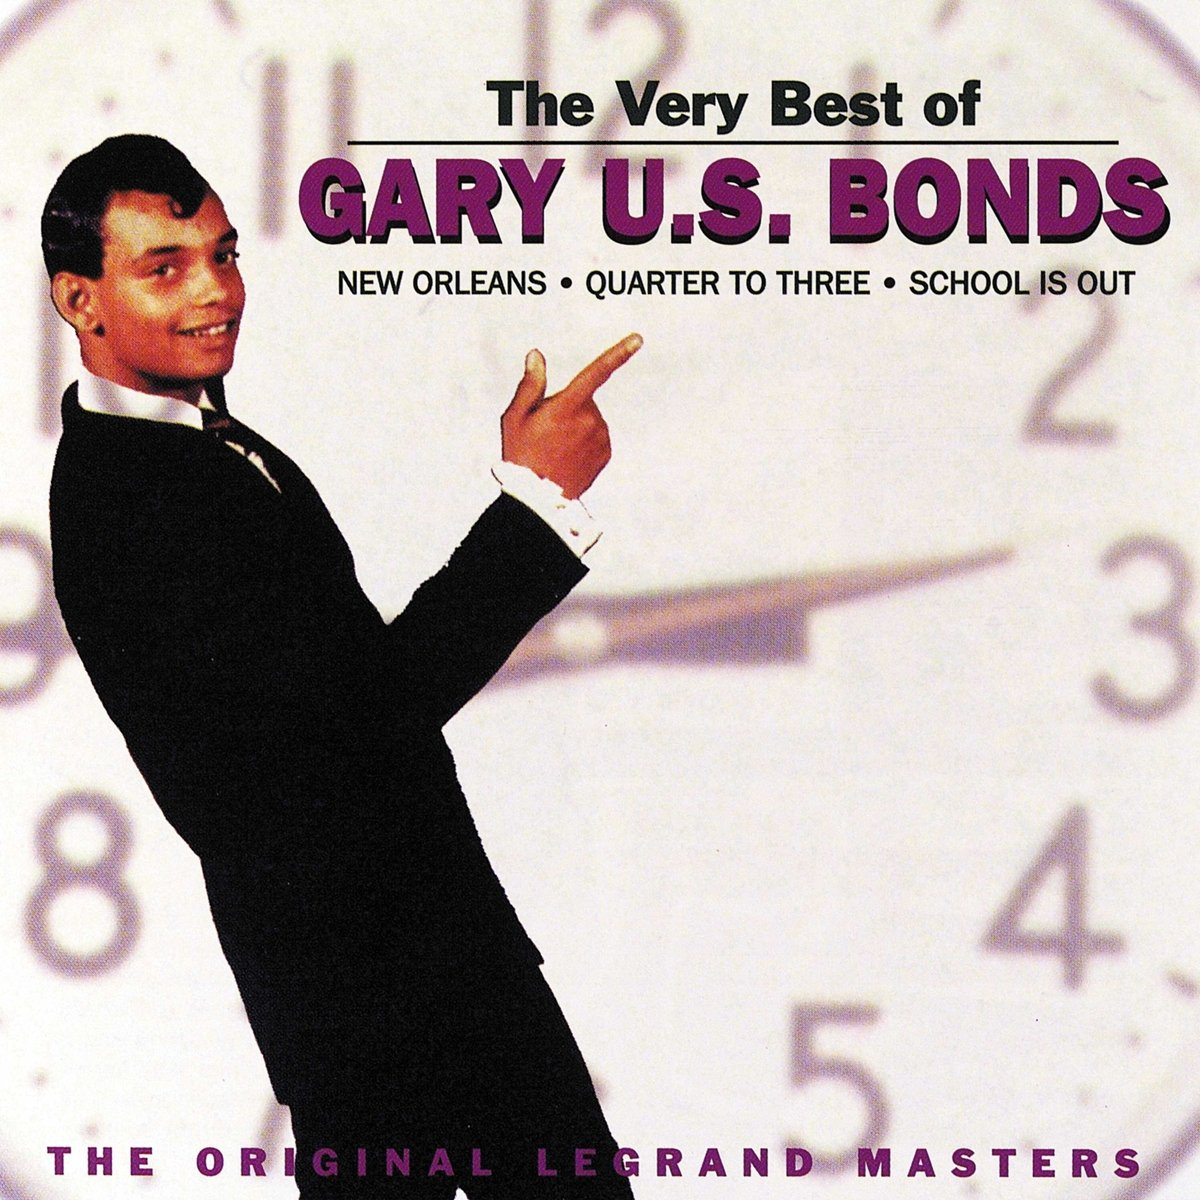 Gary U.S. Bonds - The Very Best Of Gary U.S. Bonds - Amazon.com Music